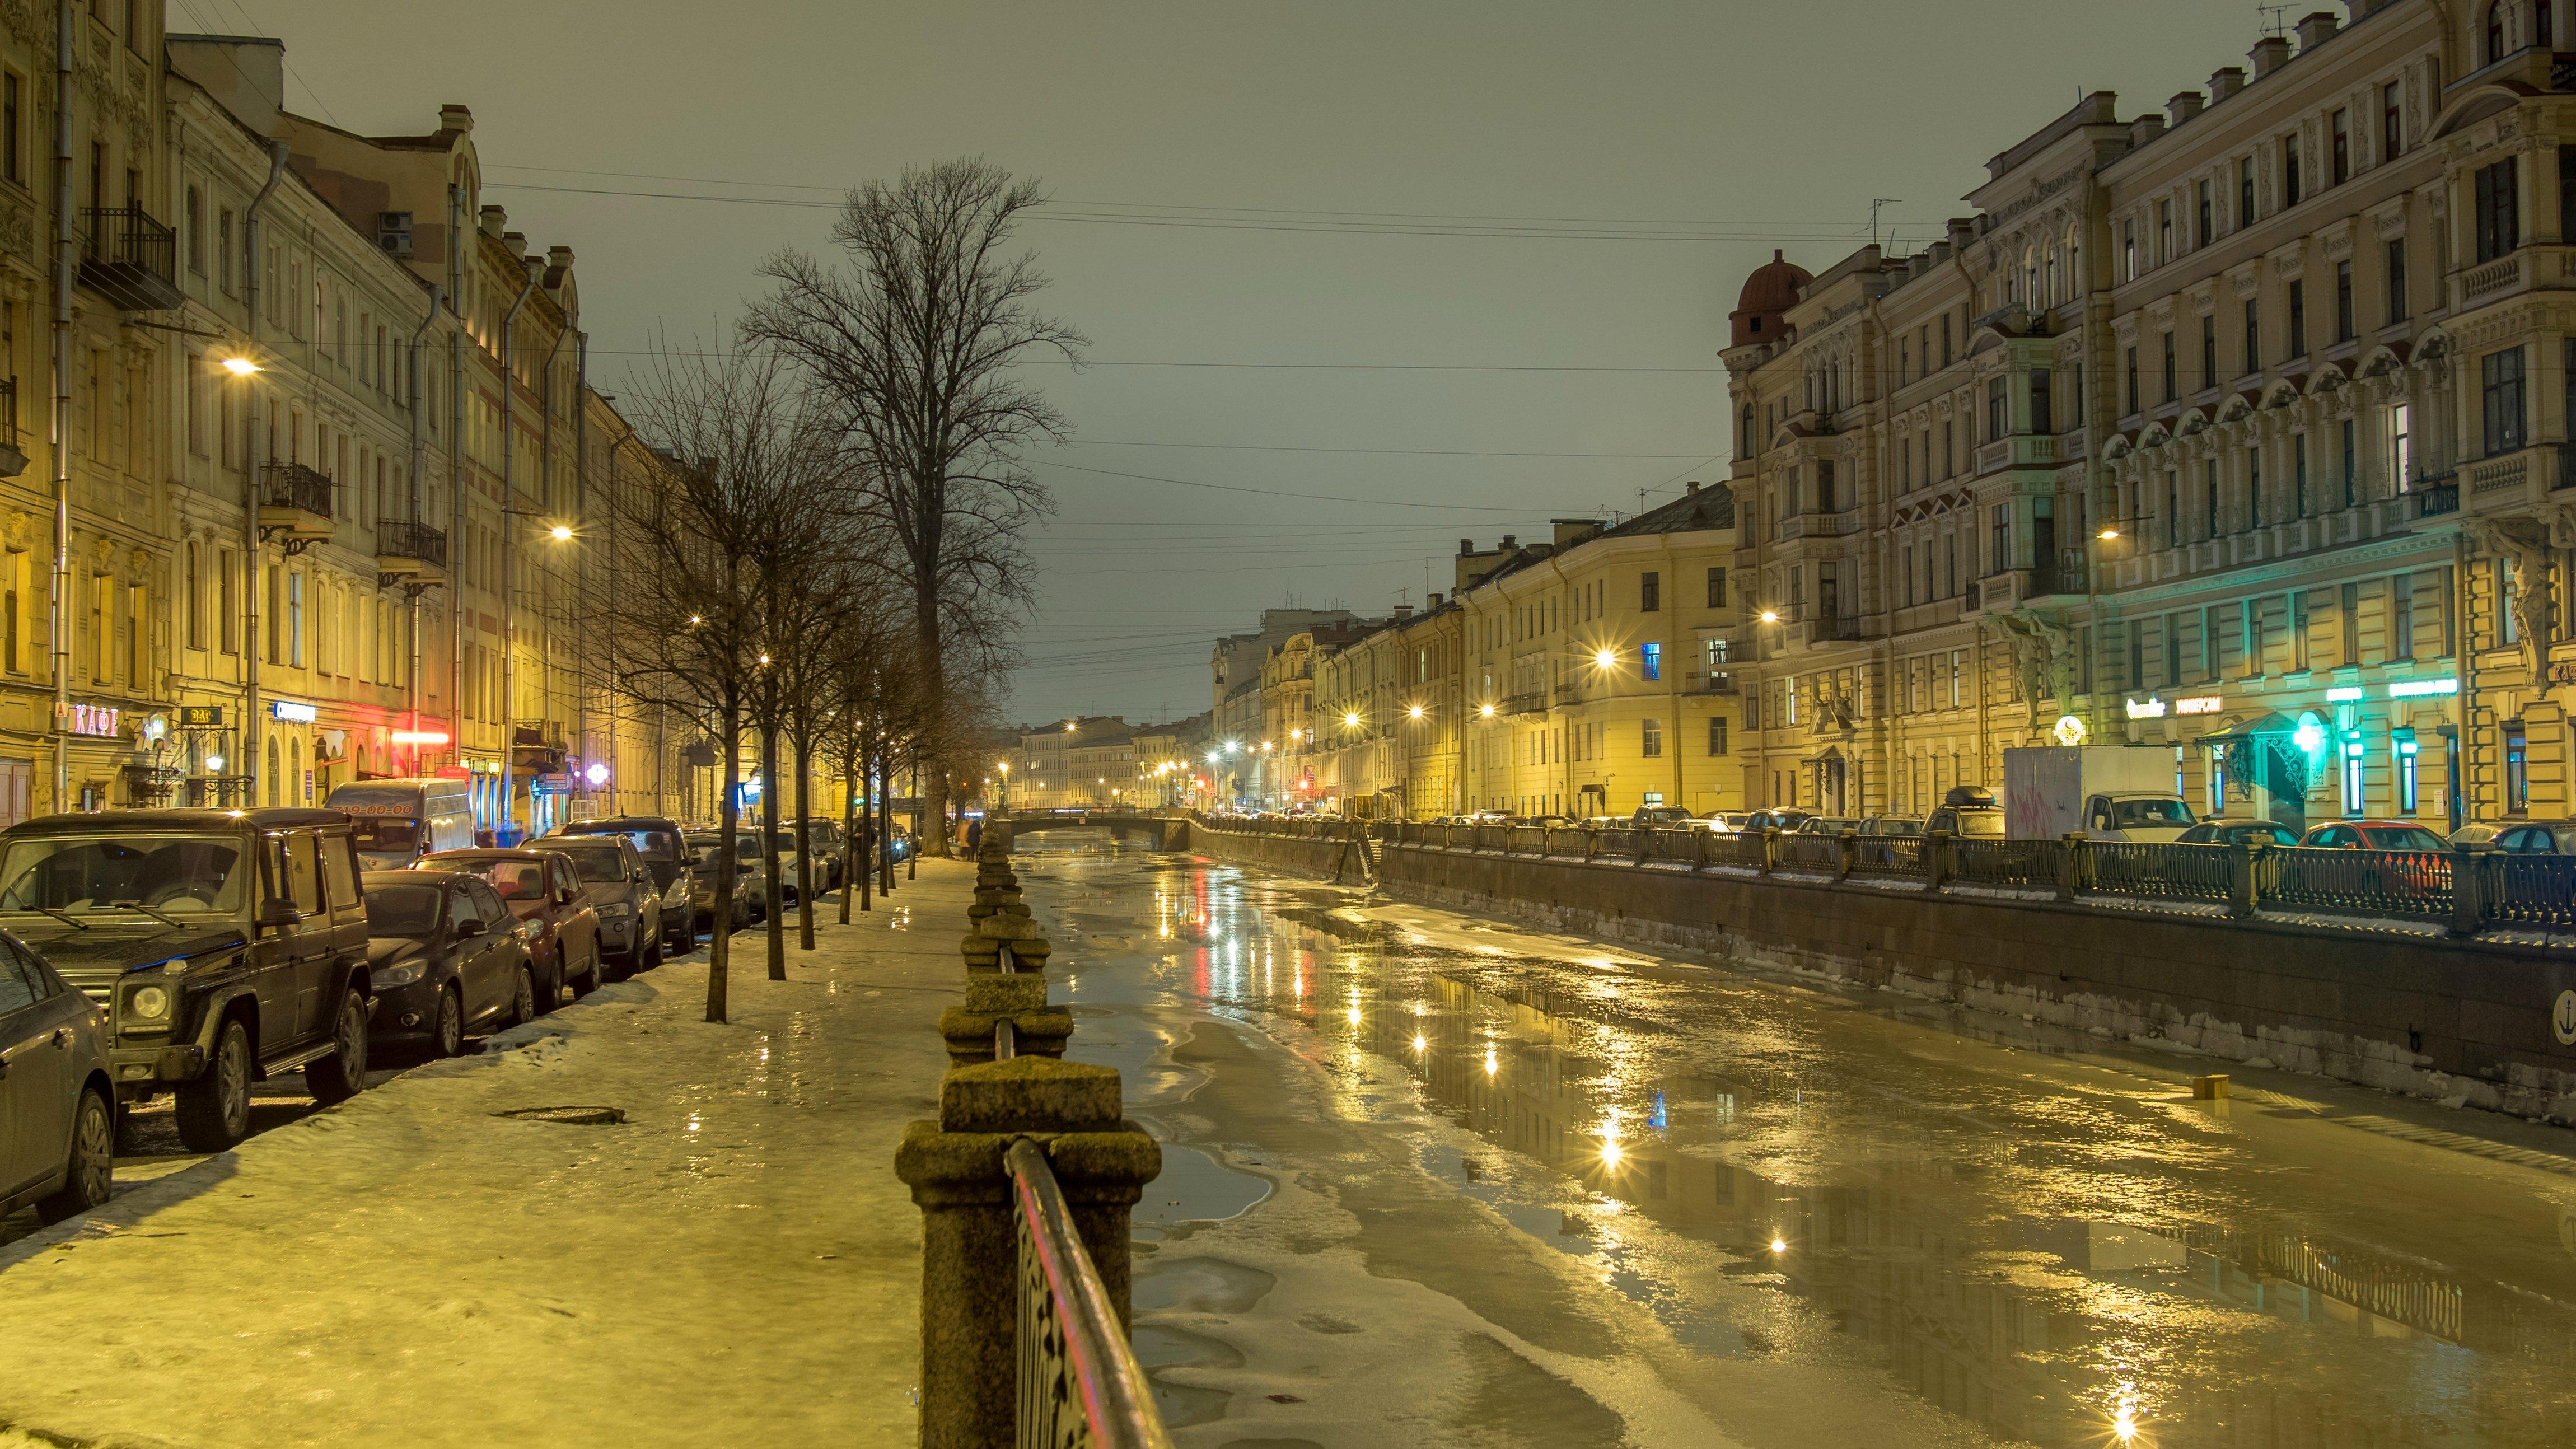 Griboyedov canal, St Petersburg